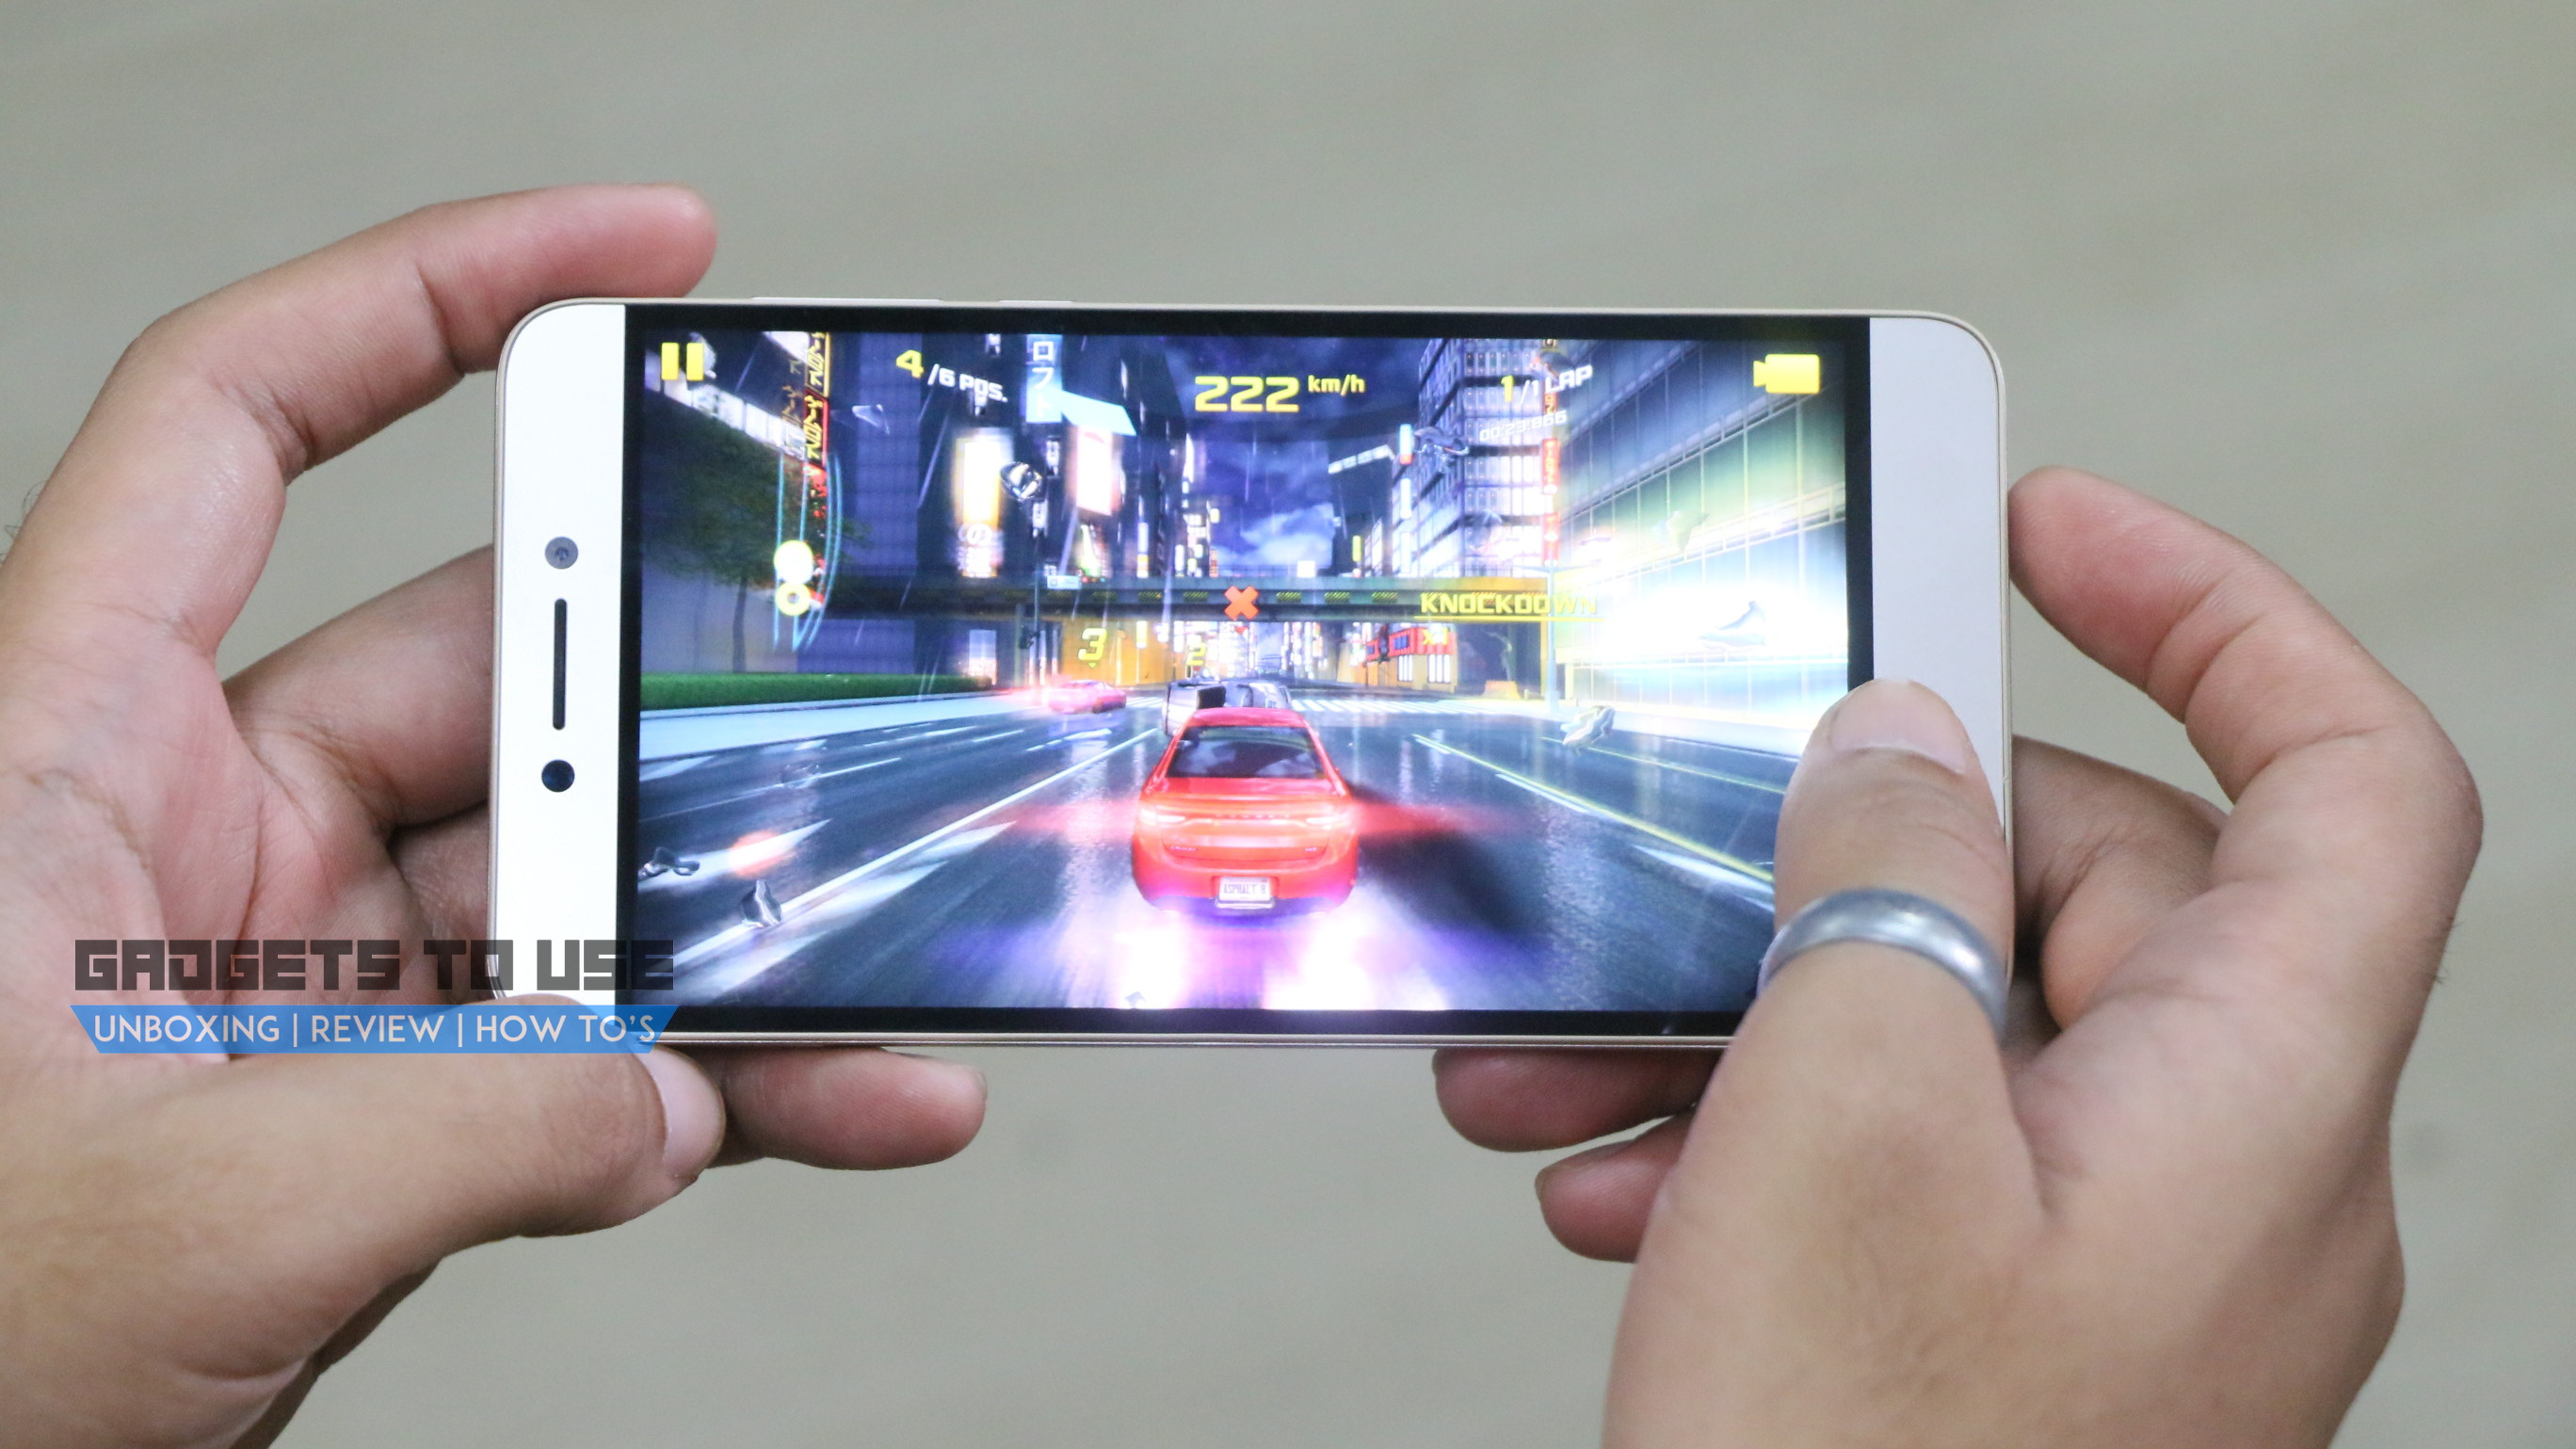 Coolpad Cool Play 6 review: Good camera and UI with Premium Build